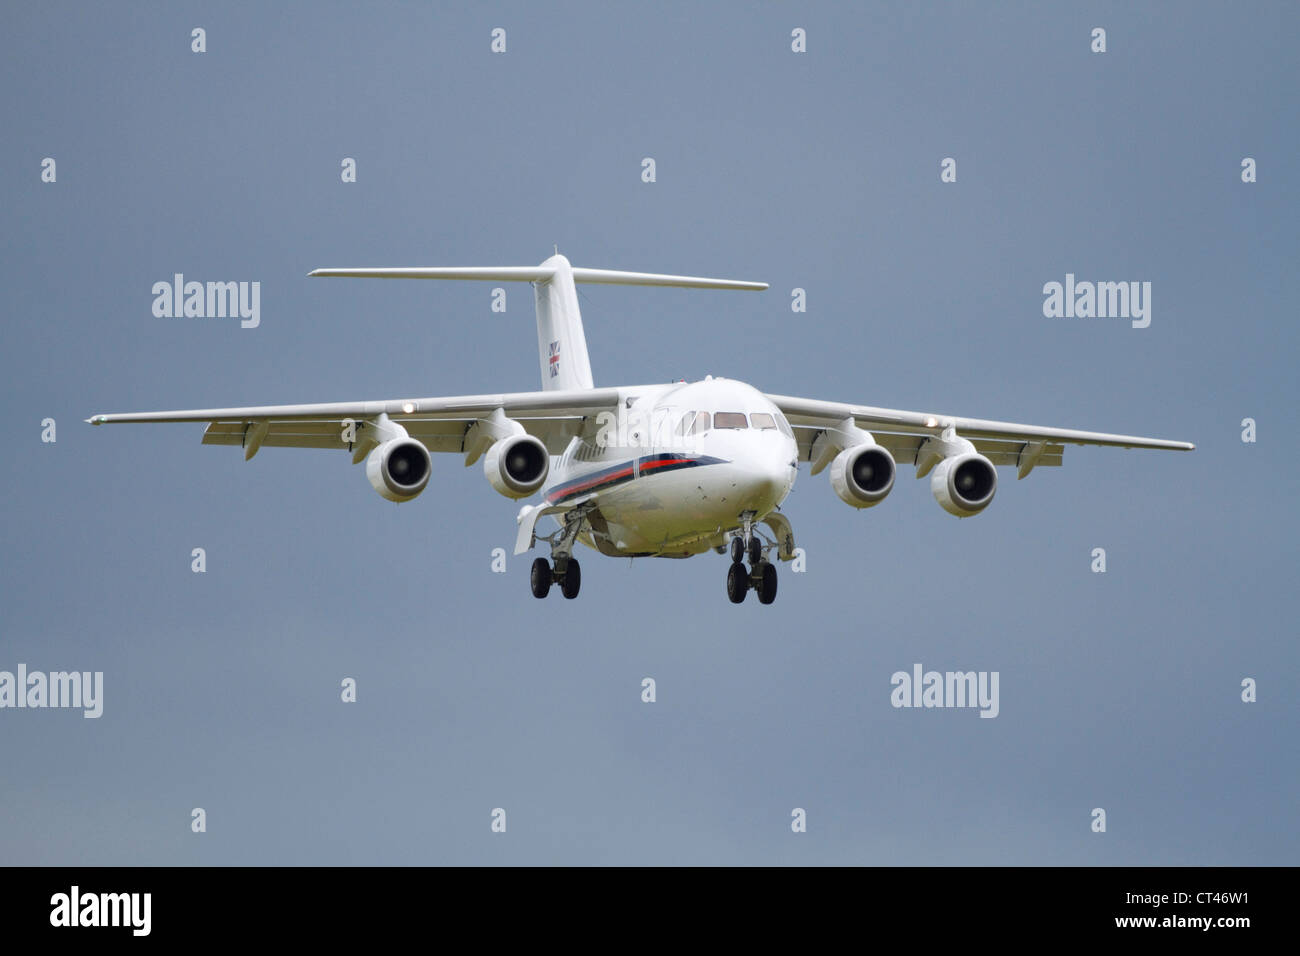 BAe 146 of the RAF Royal Flight on approach to land. RAF Waddington 2012 - Stock Image